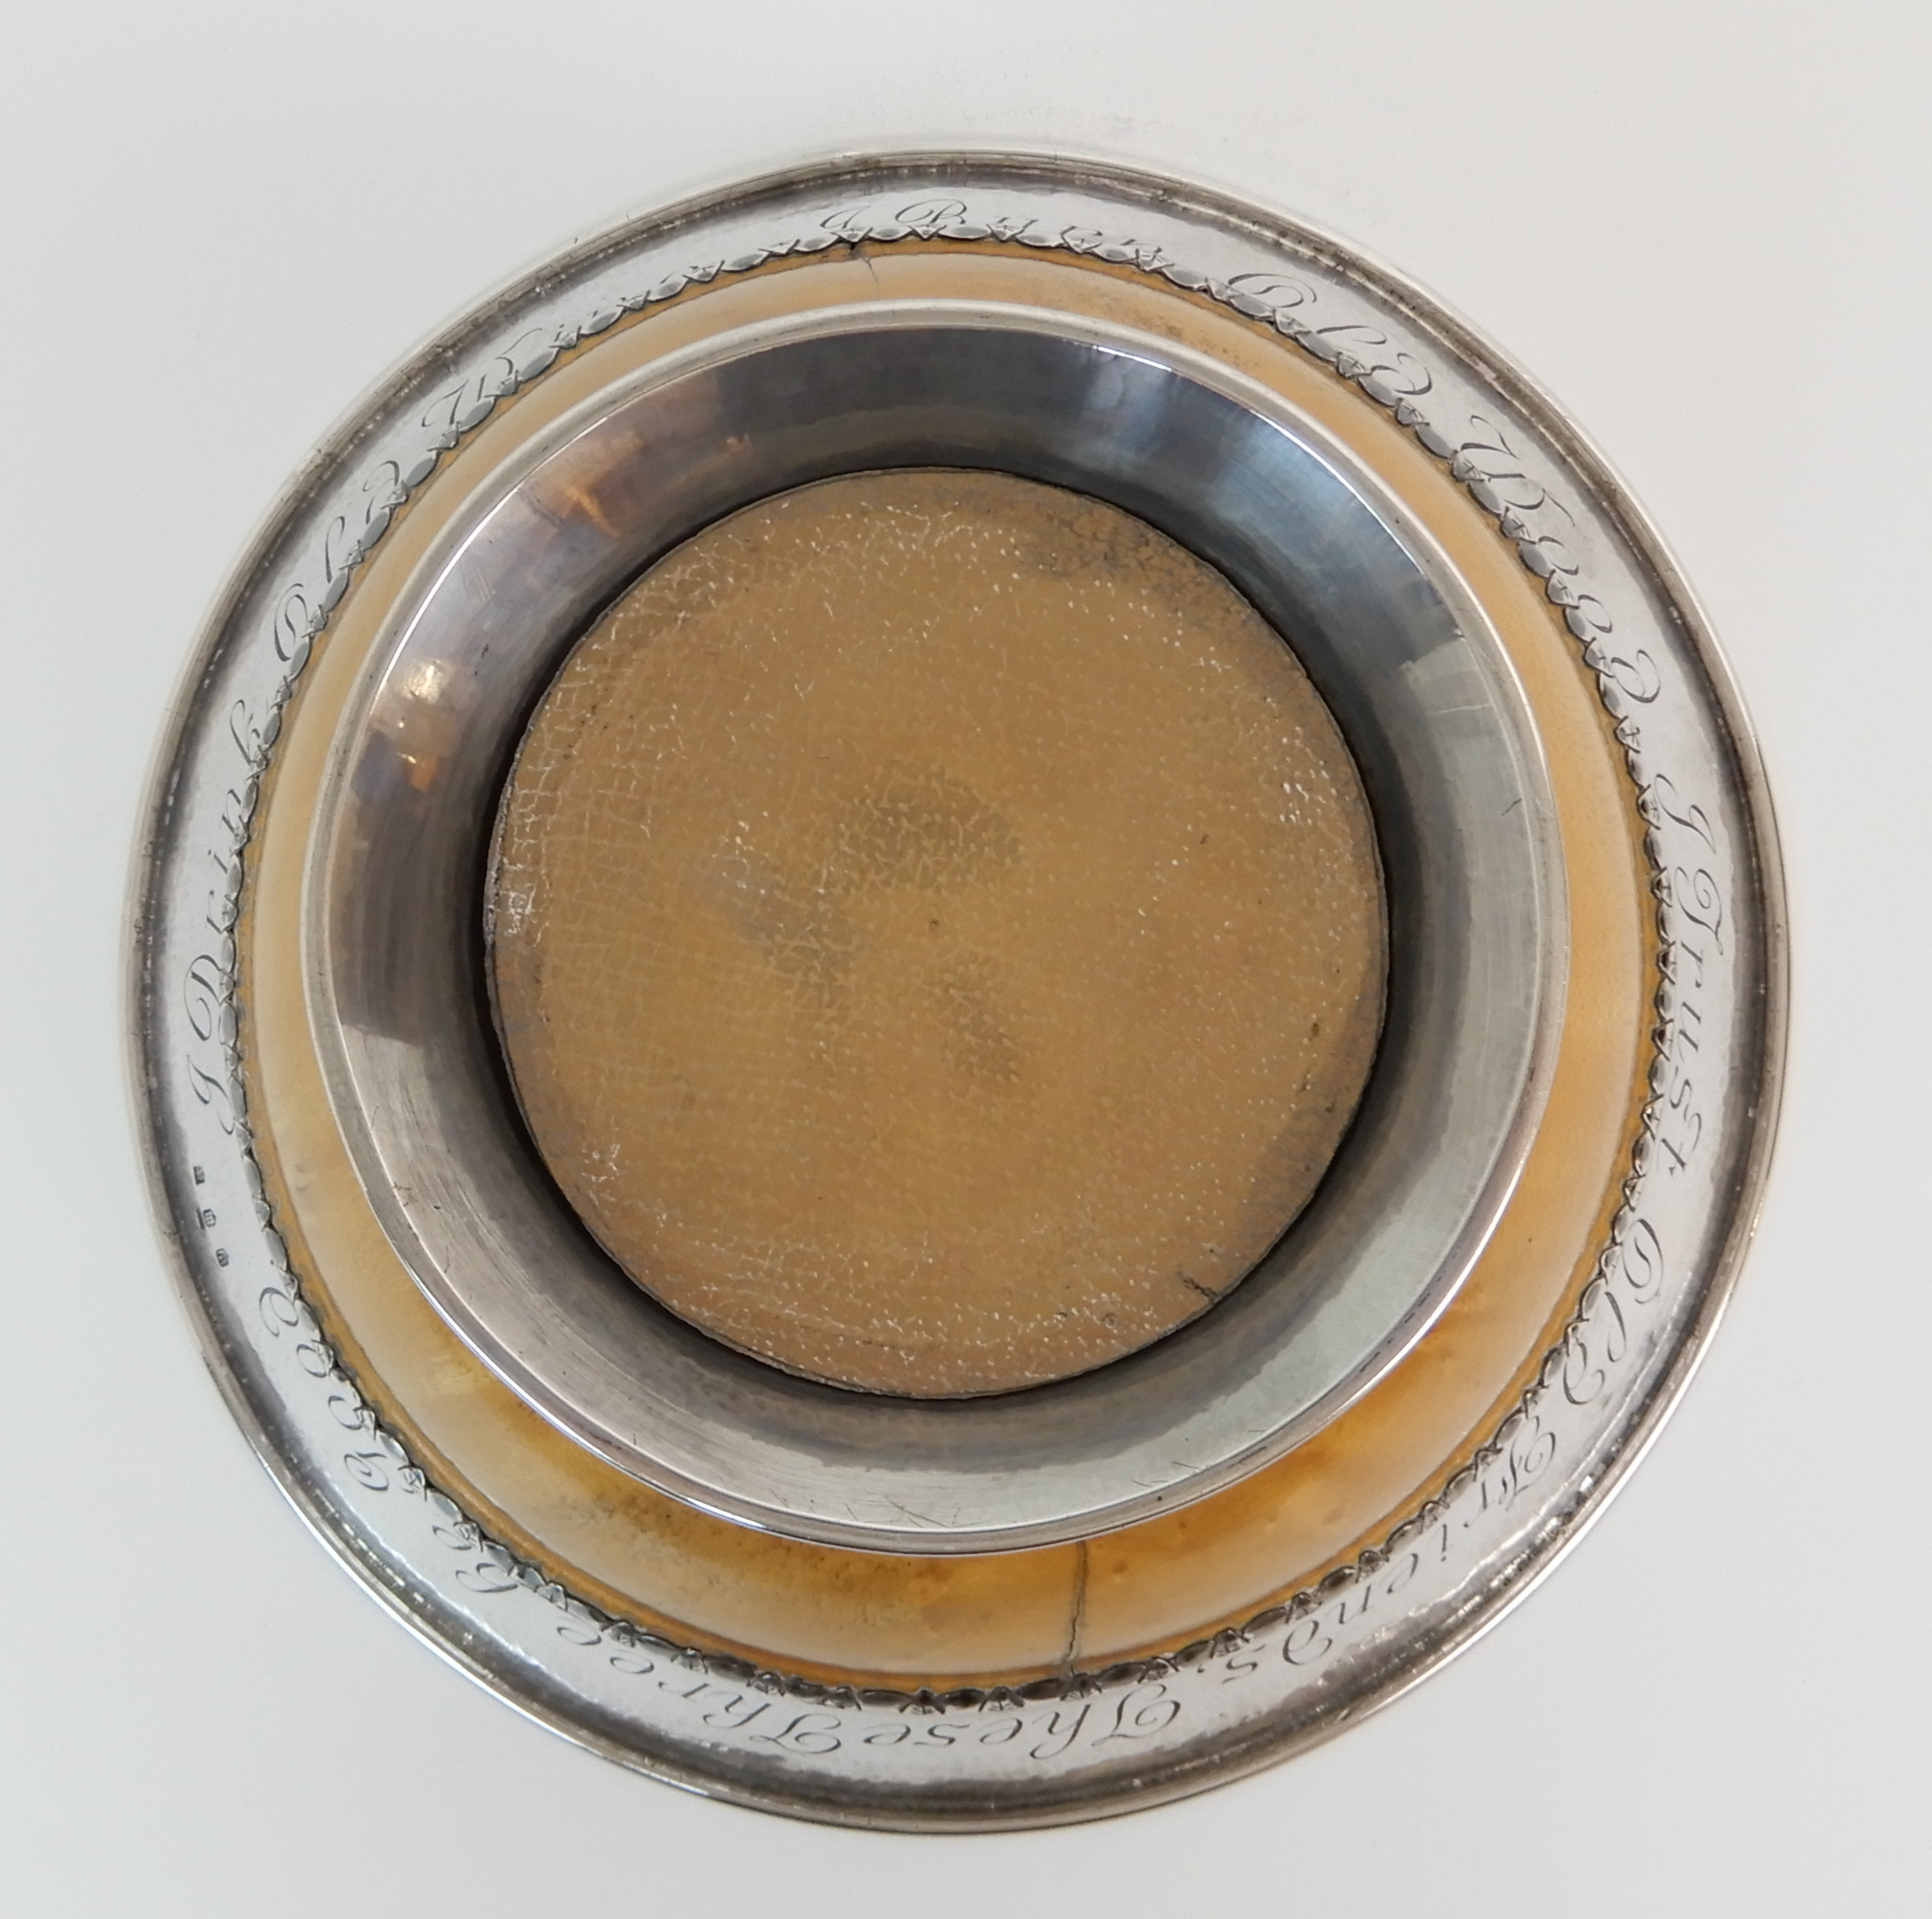 AN ARTS AND CRAFTS SILVER MOUNTED TREEN BOWL by Elizabeth Henry Kirkwood, Edinburgh 1947, or - Image 8 of 9